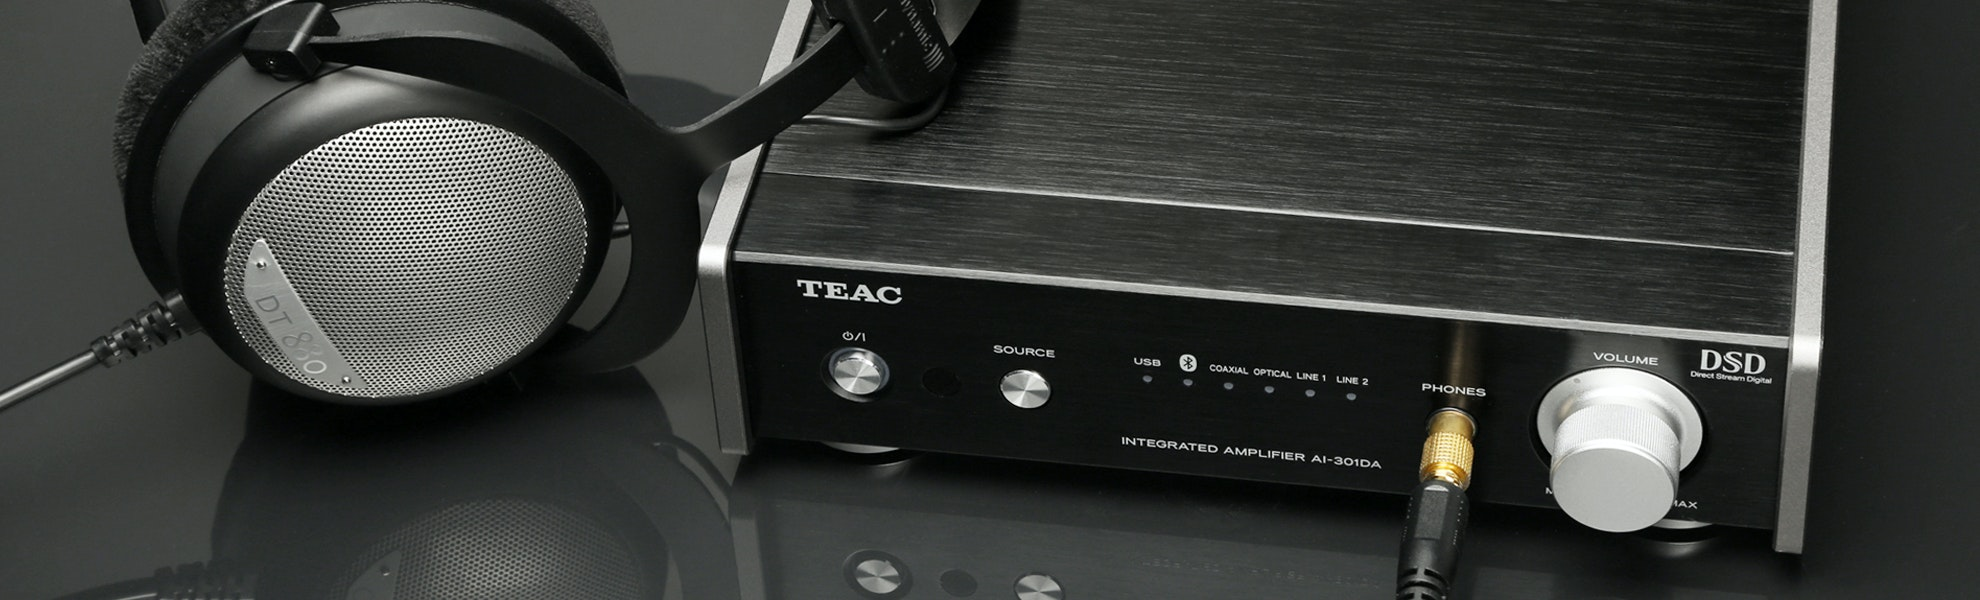 TEAC AI-301DA Integrated Amplifier w/ USB DAC